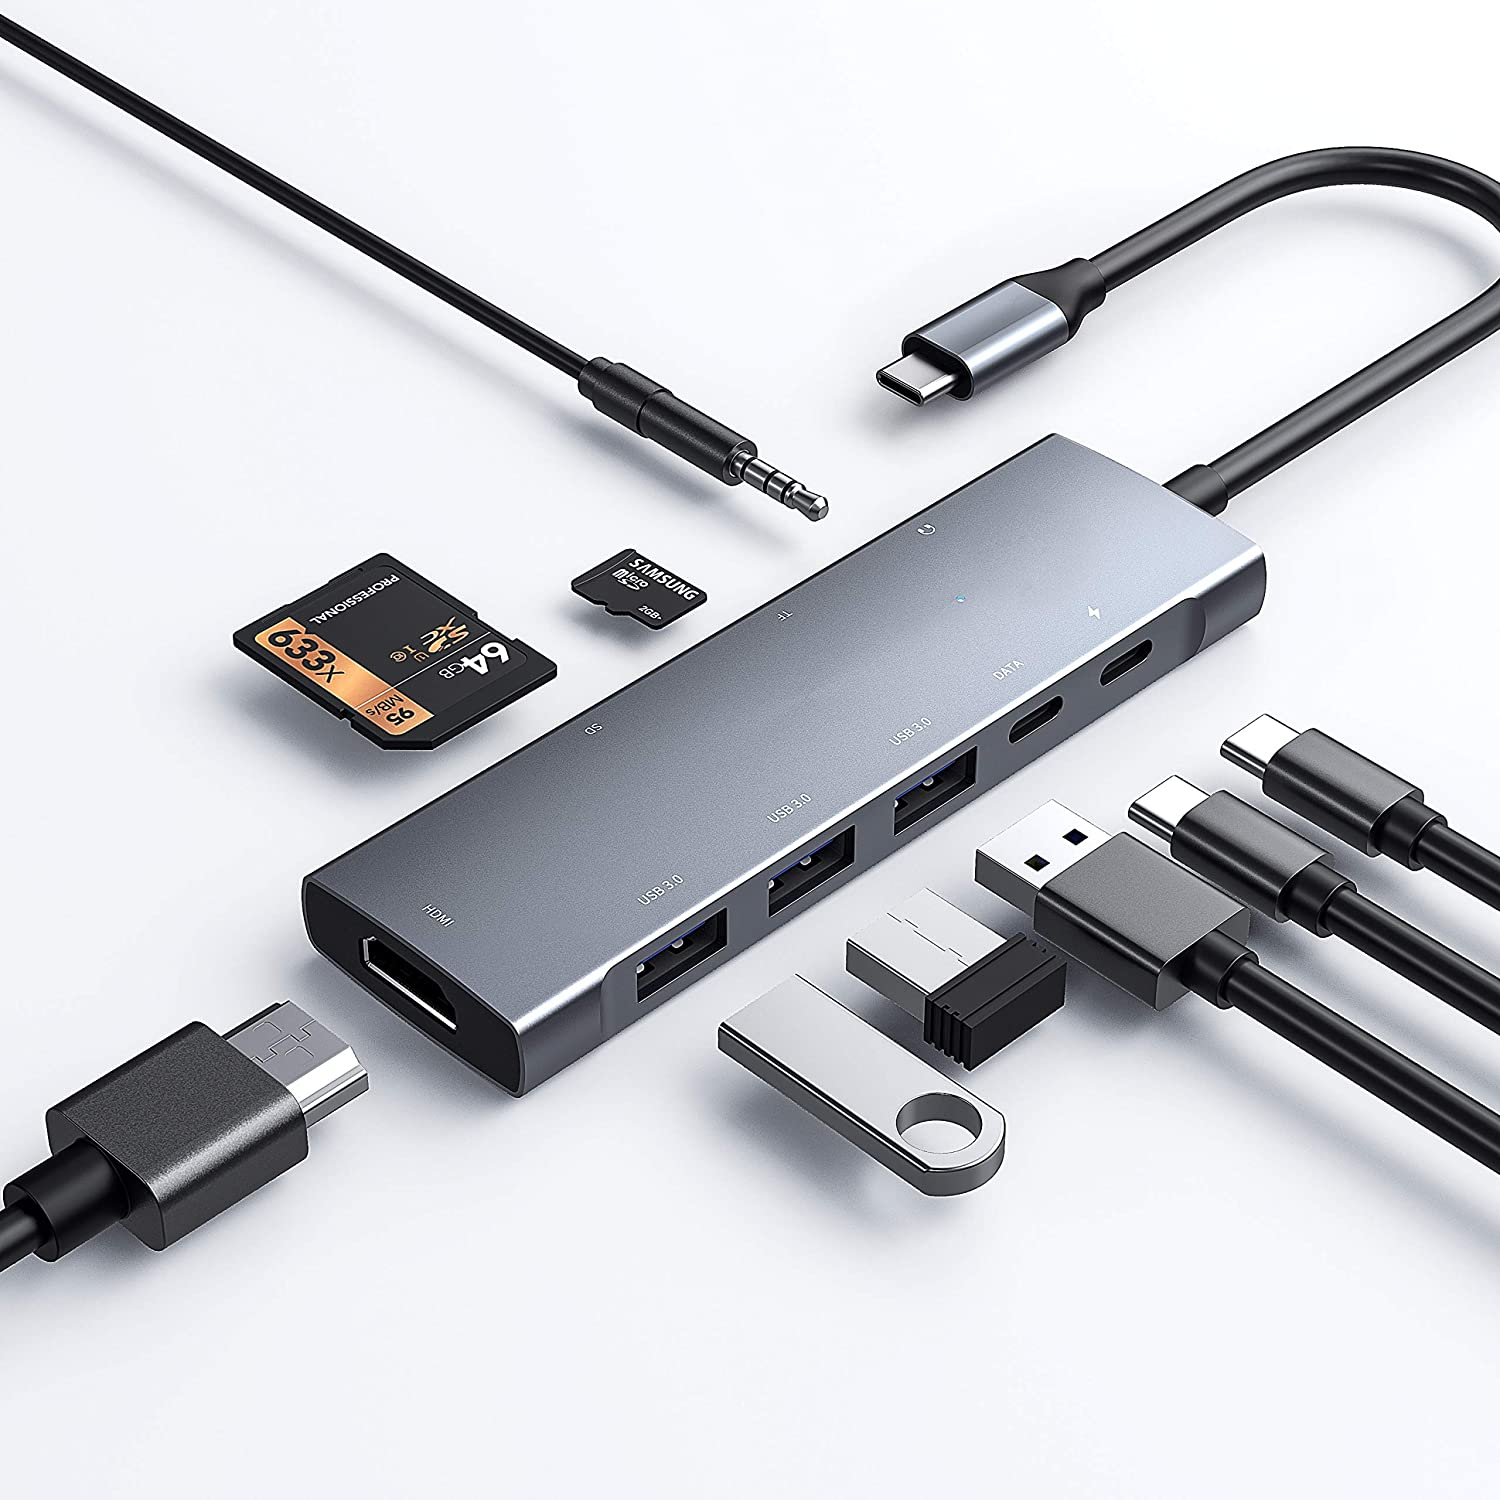 USB C Hub for iPad Pro 11/12.9 2021 2020 2018,iPad Air 4,Type C Multiport Adapter for ChromeBook Samsung MacBook with 4K HDMI,3 USB 3.0,3.5mm Audio,SD/Micro SD Card Slot,60W PD Charging,USB-C 3.0 Data